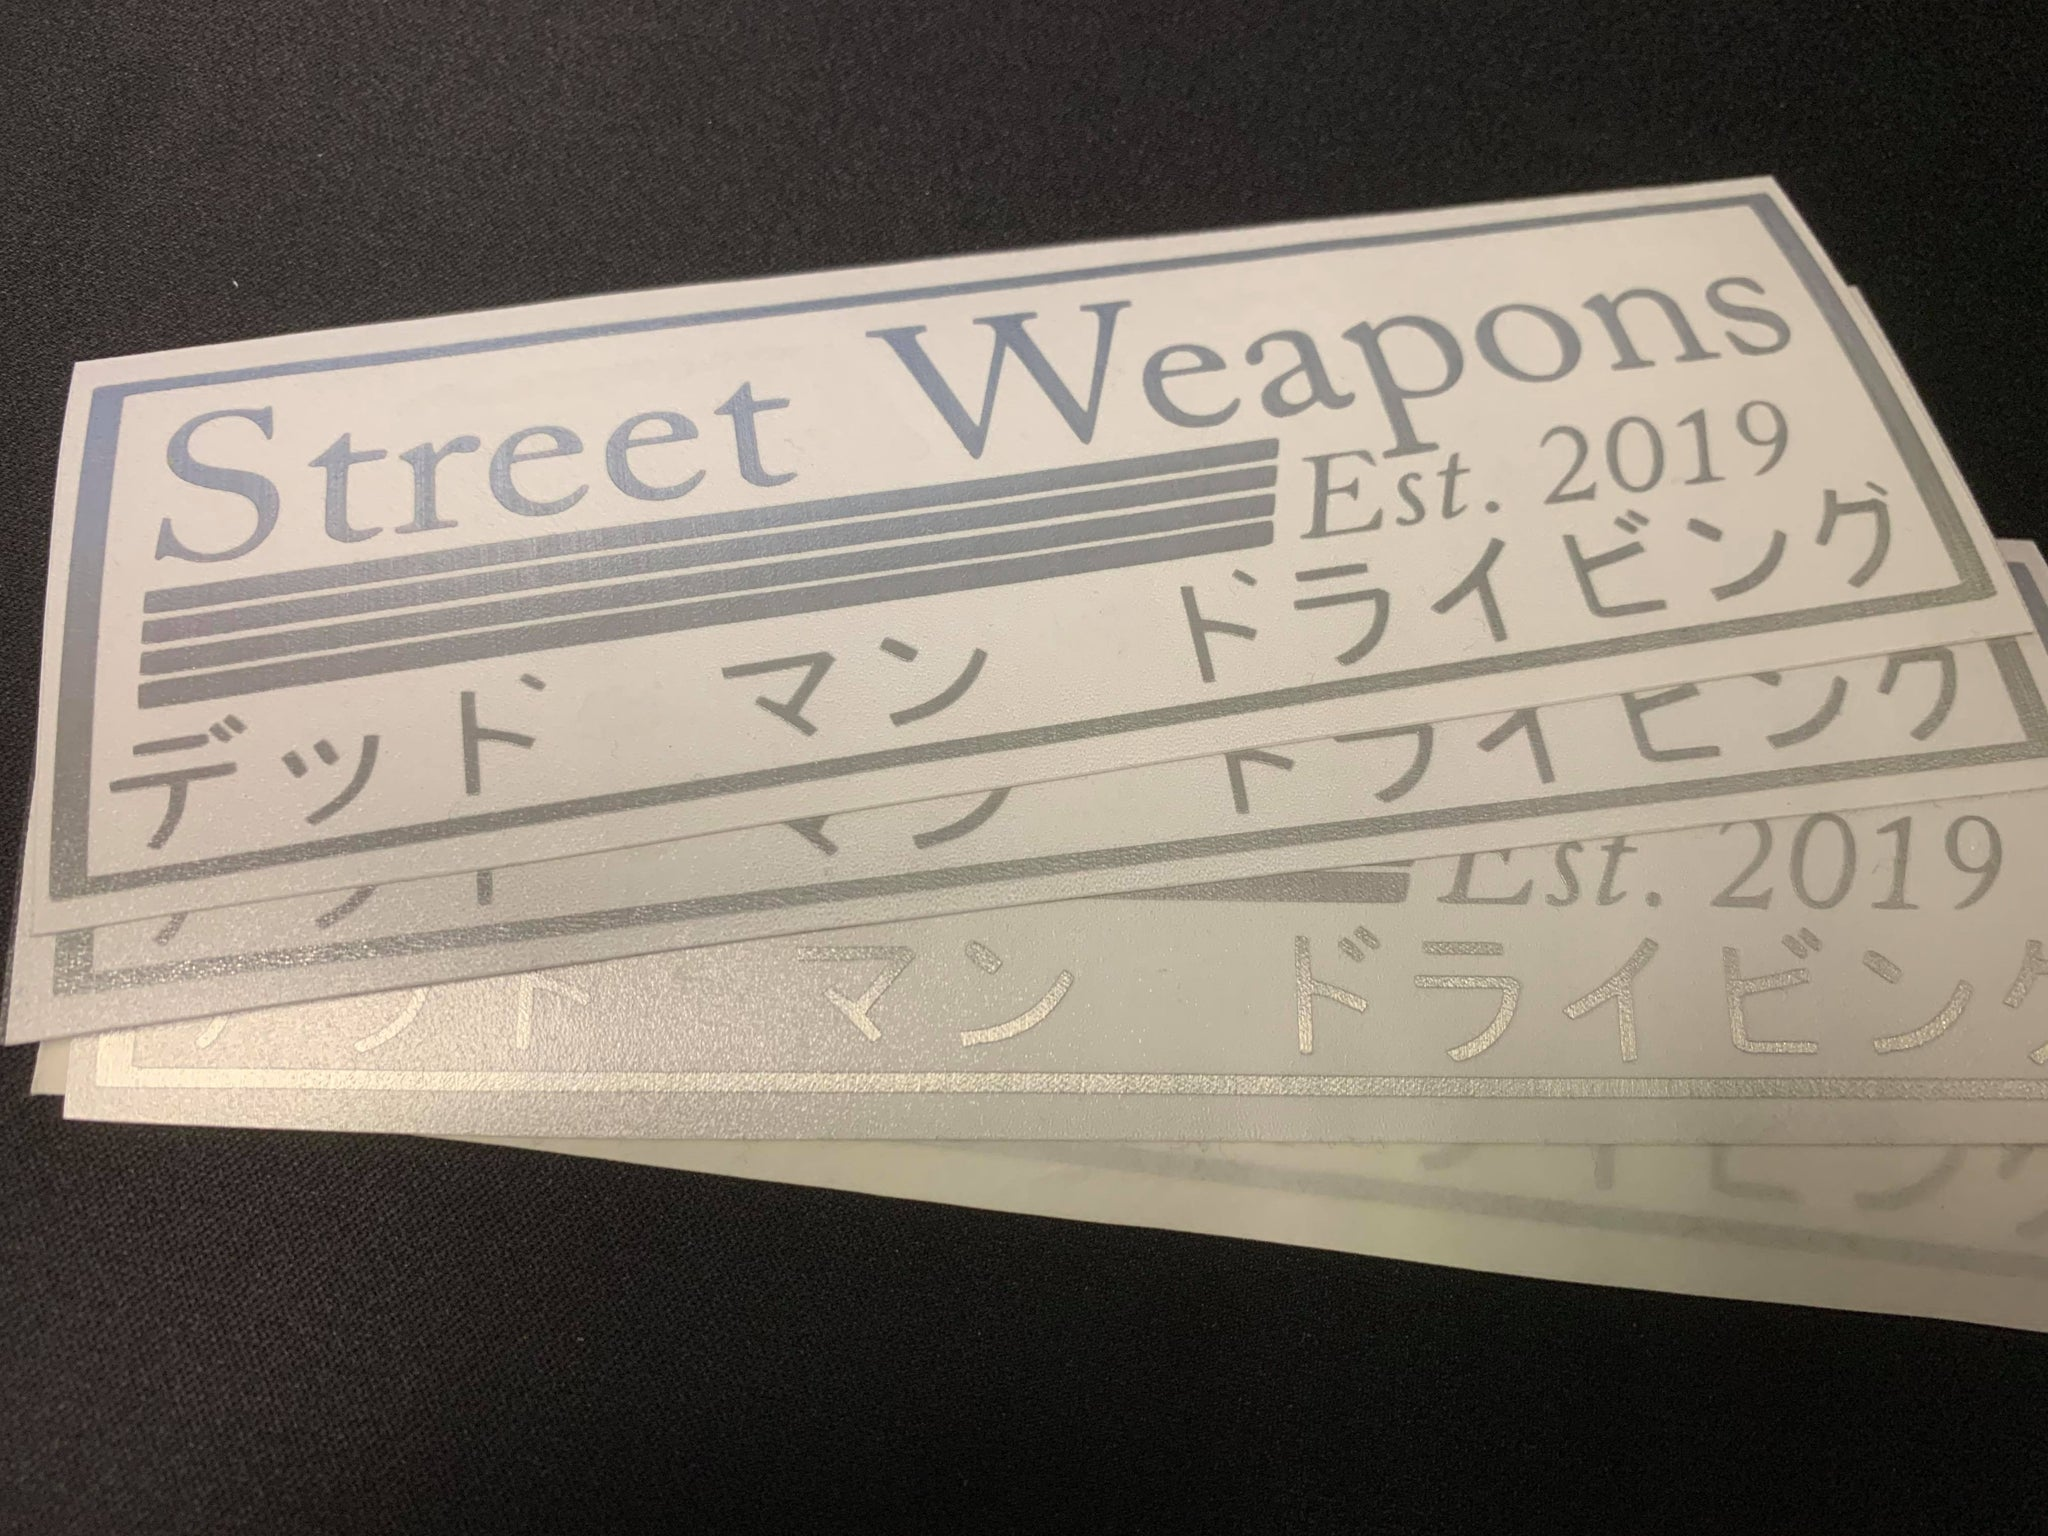 Silver Street Weapons JDM - BoostedVinyl